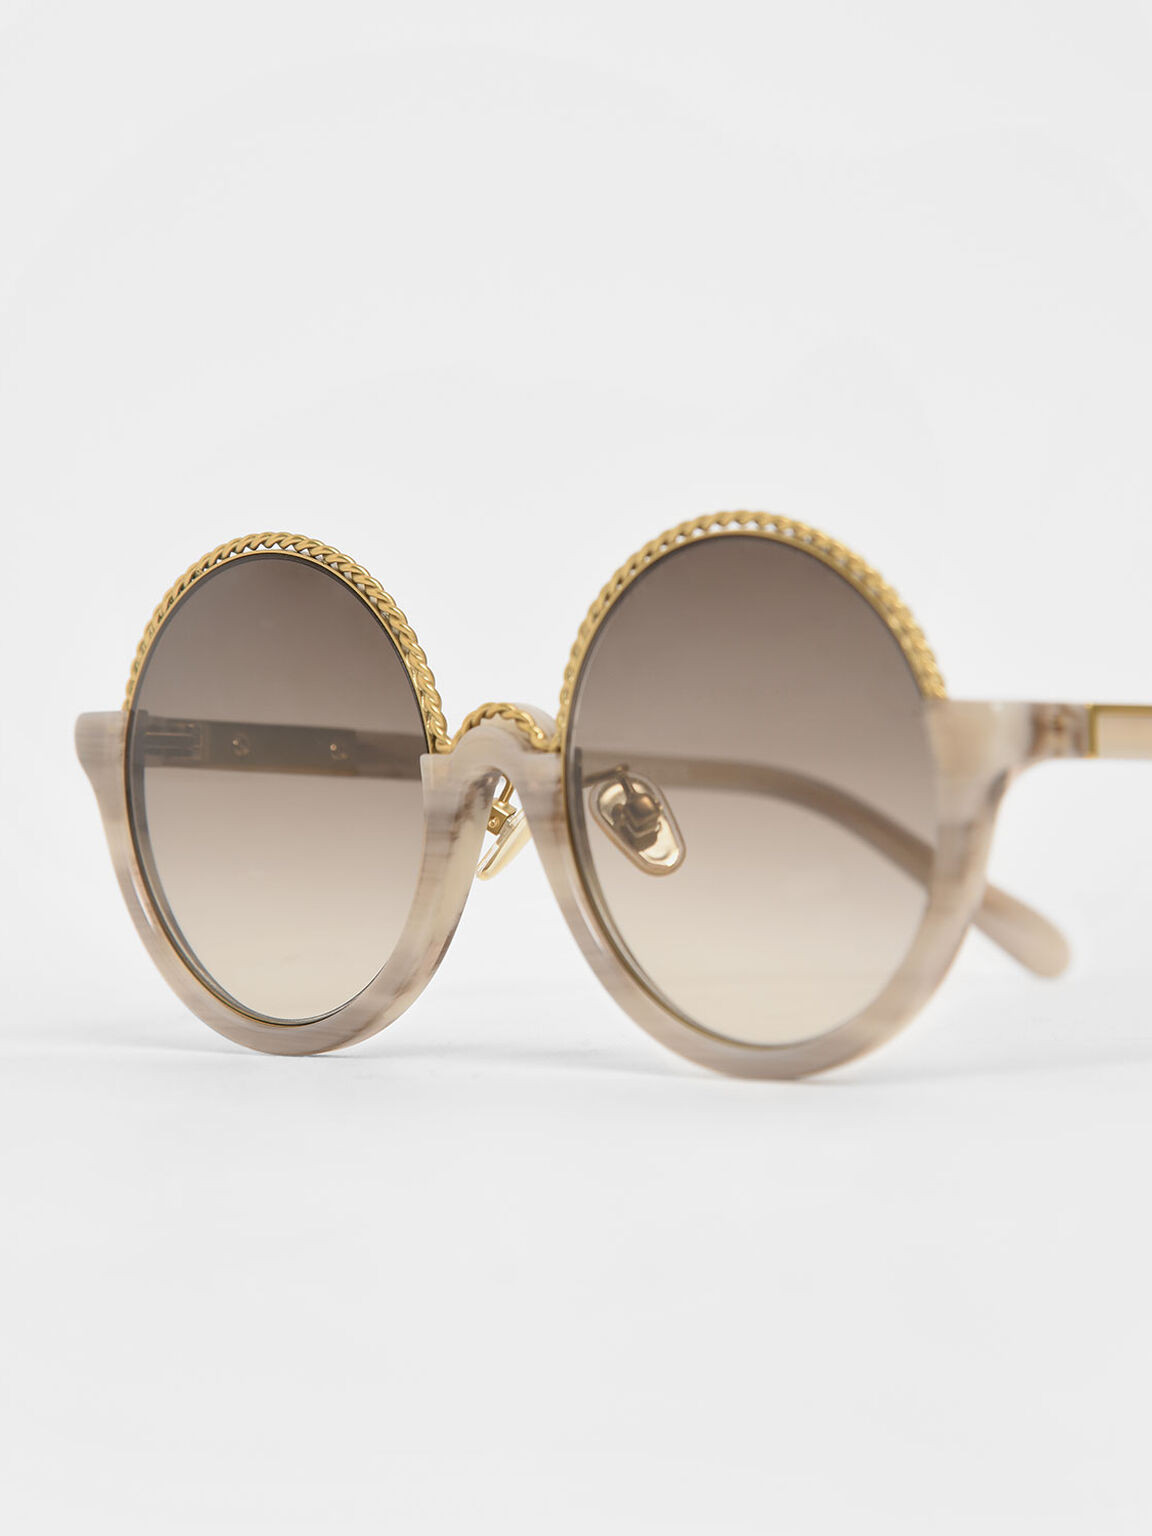 Printed Half Frame Embellished Round Sunglasses, Cream, hi-res